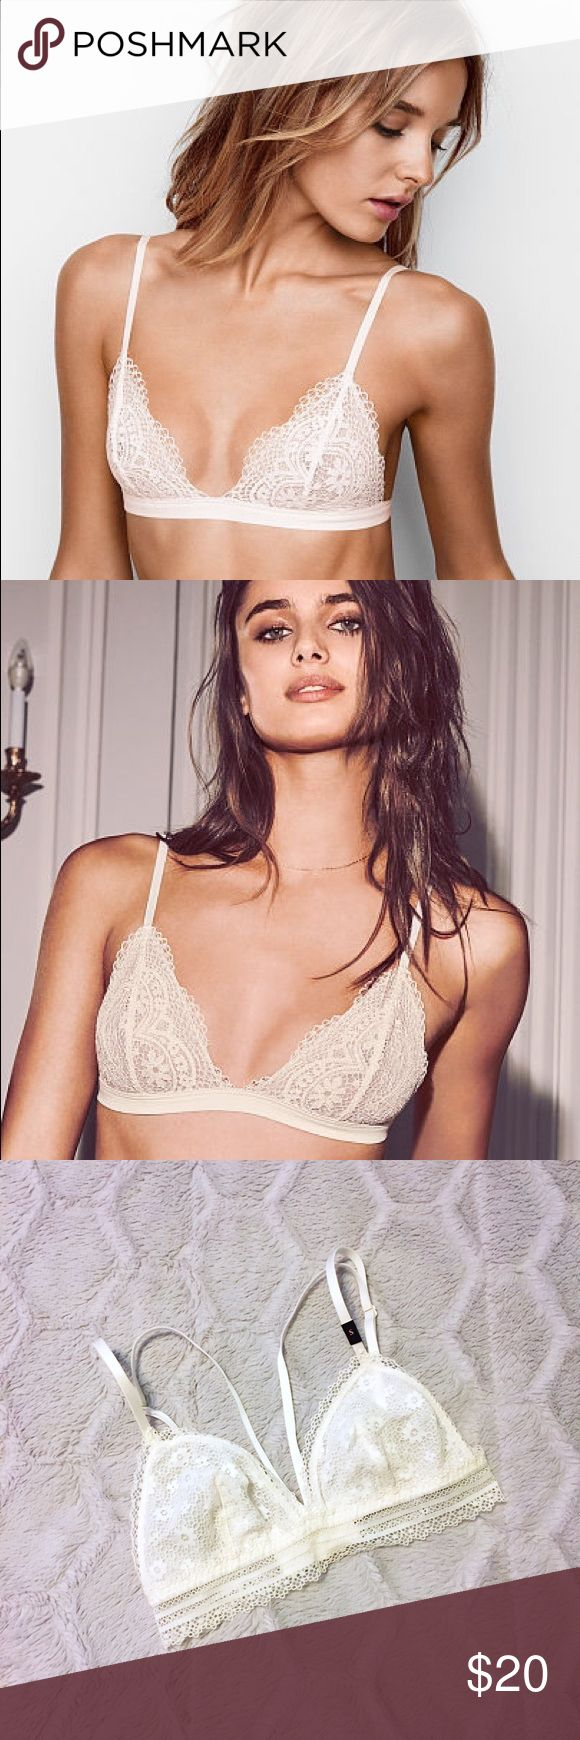 Victoria's Secret Crochet Lace Triangle Bralette New with tags - dainty sheer floral crochet lace bralette from Victoria's Secret. Style shown on model. Size small. Off-white crochet fabric, trim and straps. Adjustable straps. 4 sets of hook and eye closures at center back. Please ask questions and feel free to bundle with other items in my closet for a discount! 💕 Victoria's Secret Intimates & Sleepwear Bras